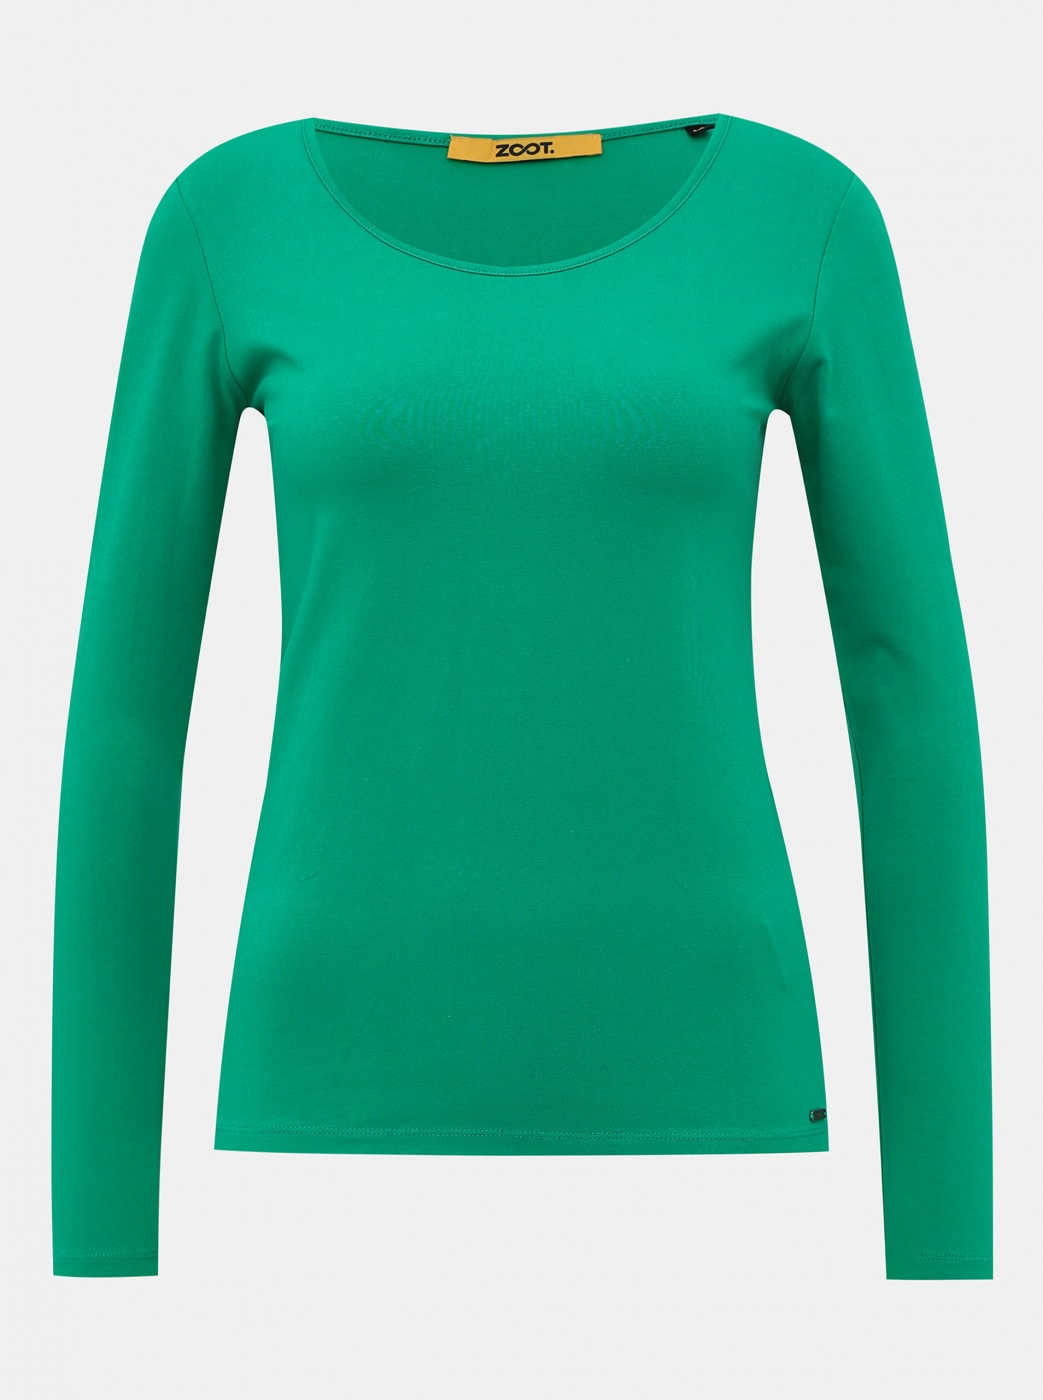 Green Women's Basic T-Shirt ZOOT Baseline Molly